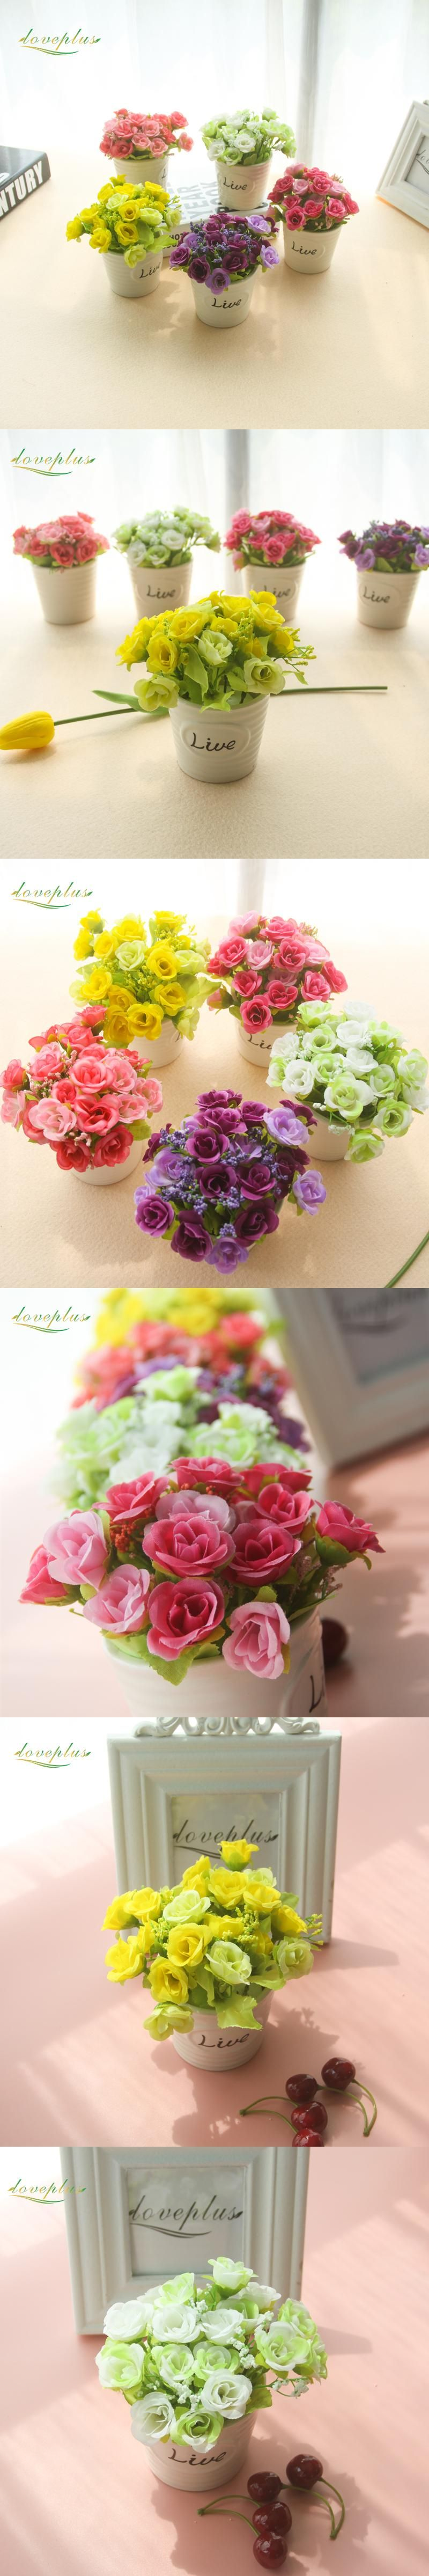 Loveplus cheap artificial roses silk fake flower bonsai for wedding loveplus cheap artificial roses silk fake flower bonsai for wedding decoration small roses table decor with izmirmasajfo Image collections